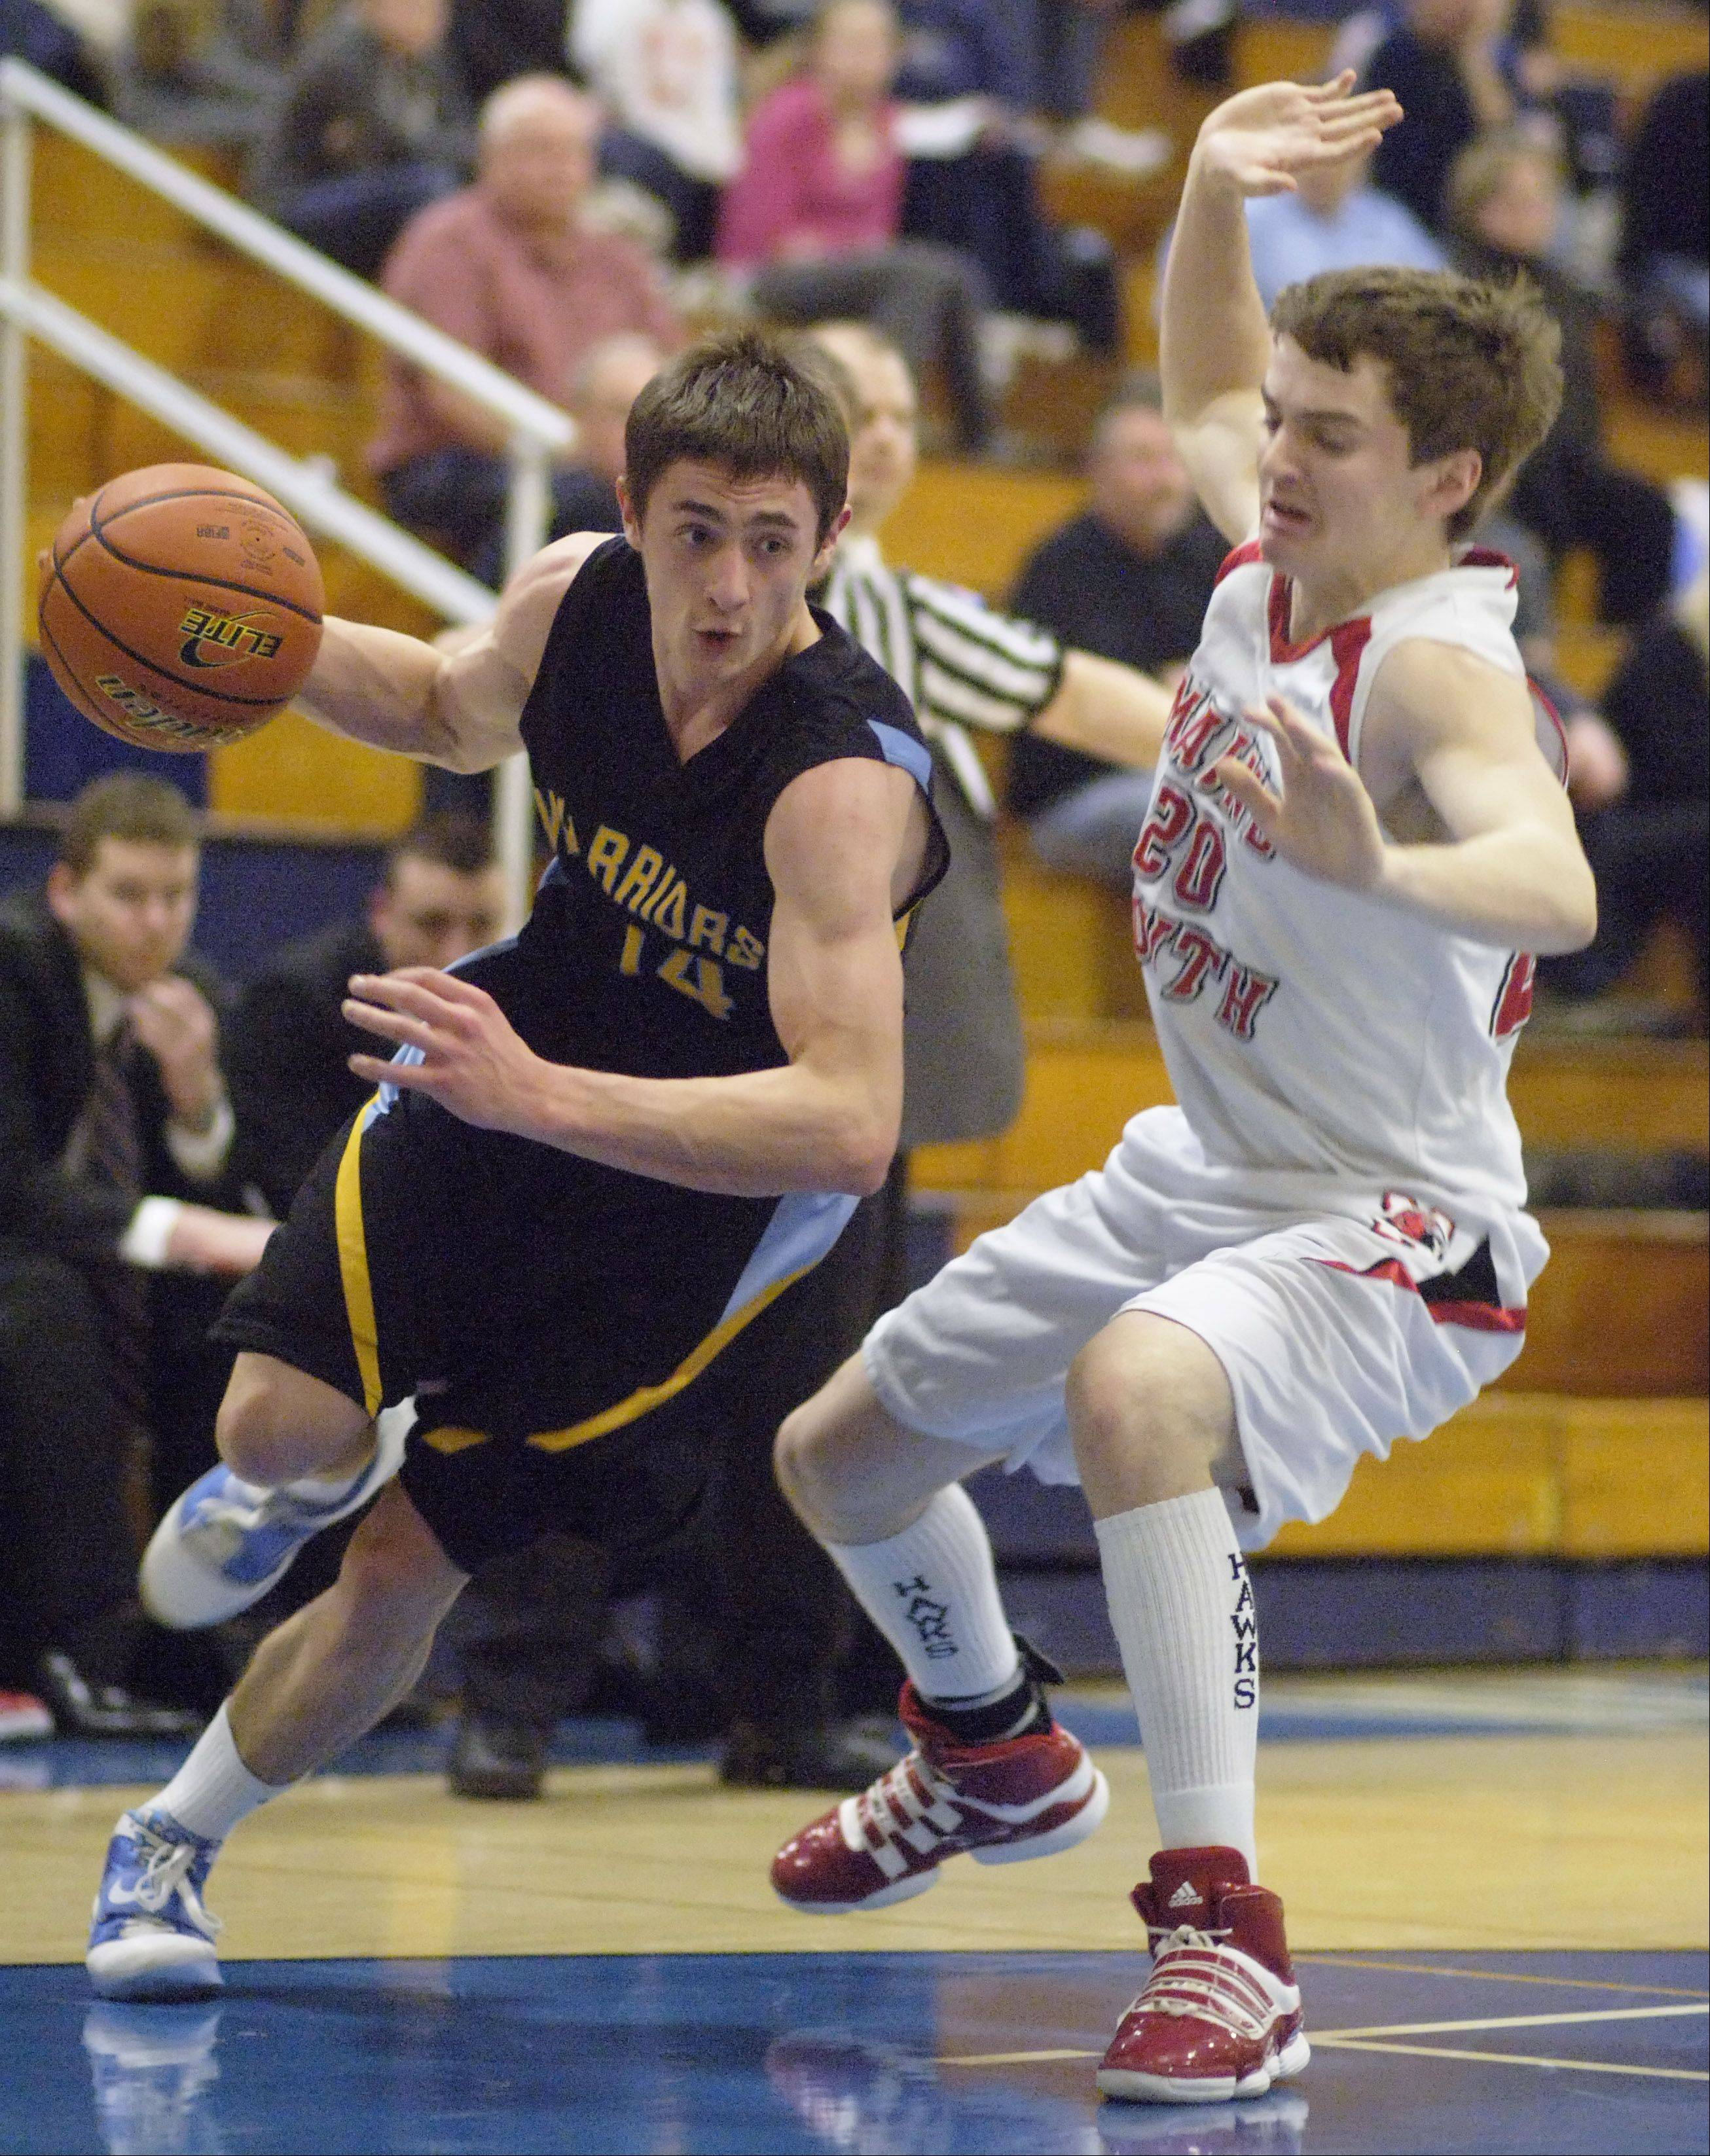 Maine West's Conor Hart, here driving against Maine South's Alex Sir last season, is among the players to watch at Wheeling's Wildcat Hardwood Classic.